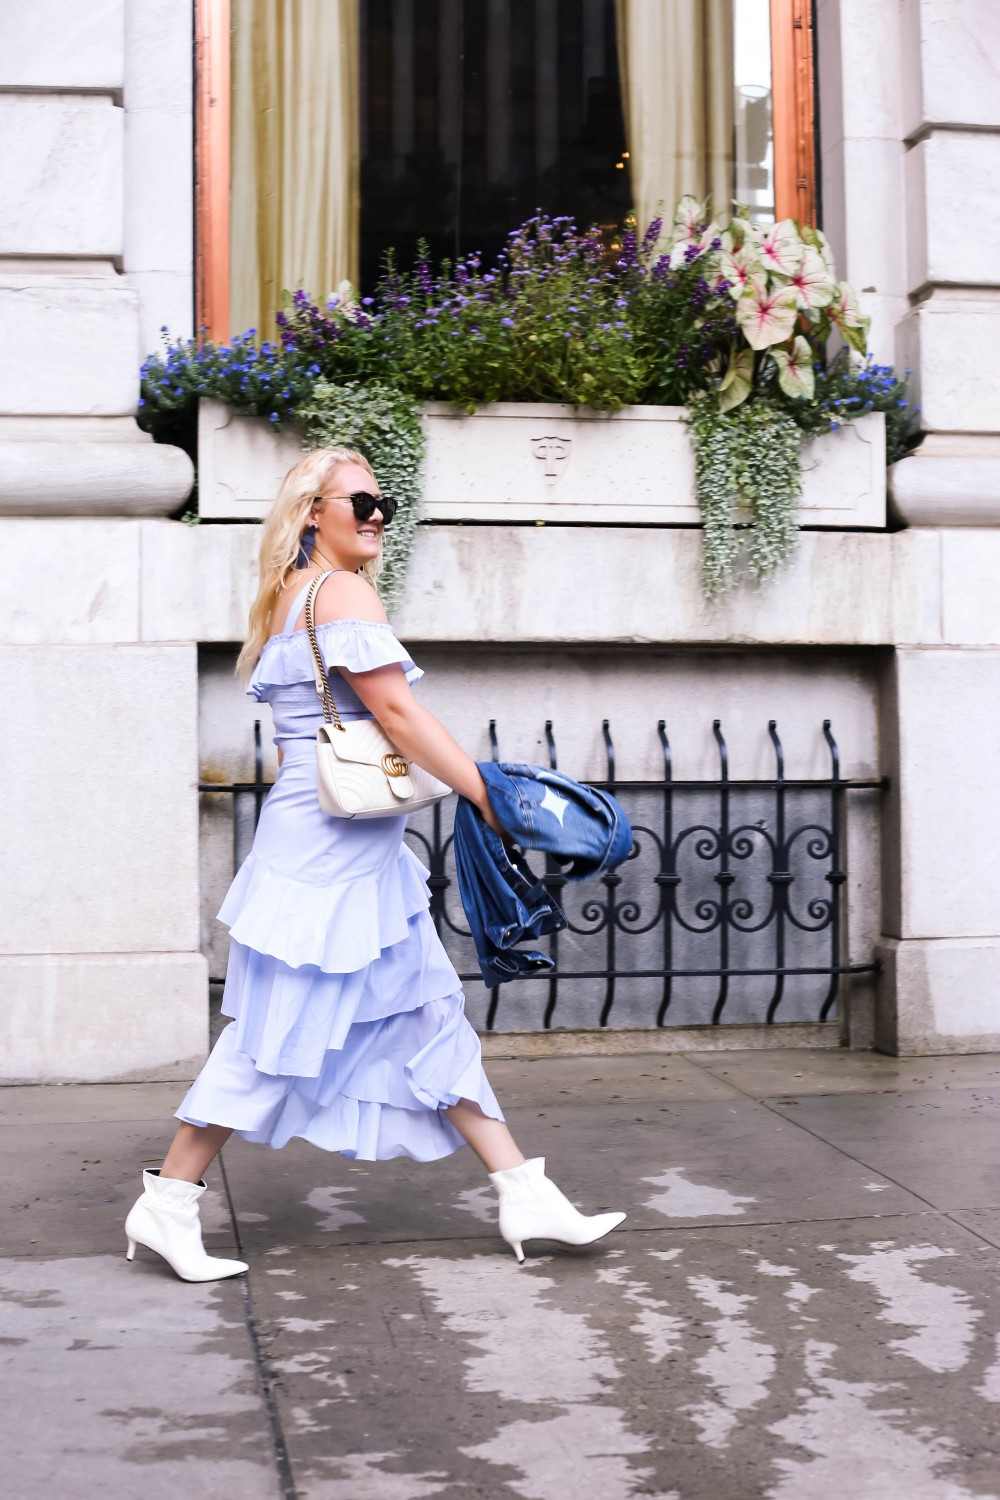 Asymmetrical Ruffle Dress, Chelsea28, White Booties, DIY Denim Jacket, Tom Ford Sunglasses, Kendra Scott Earrings, Gucci Marmont Bag